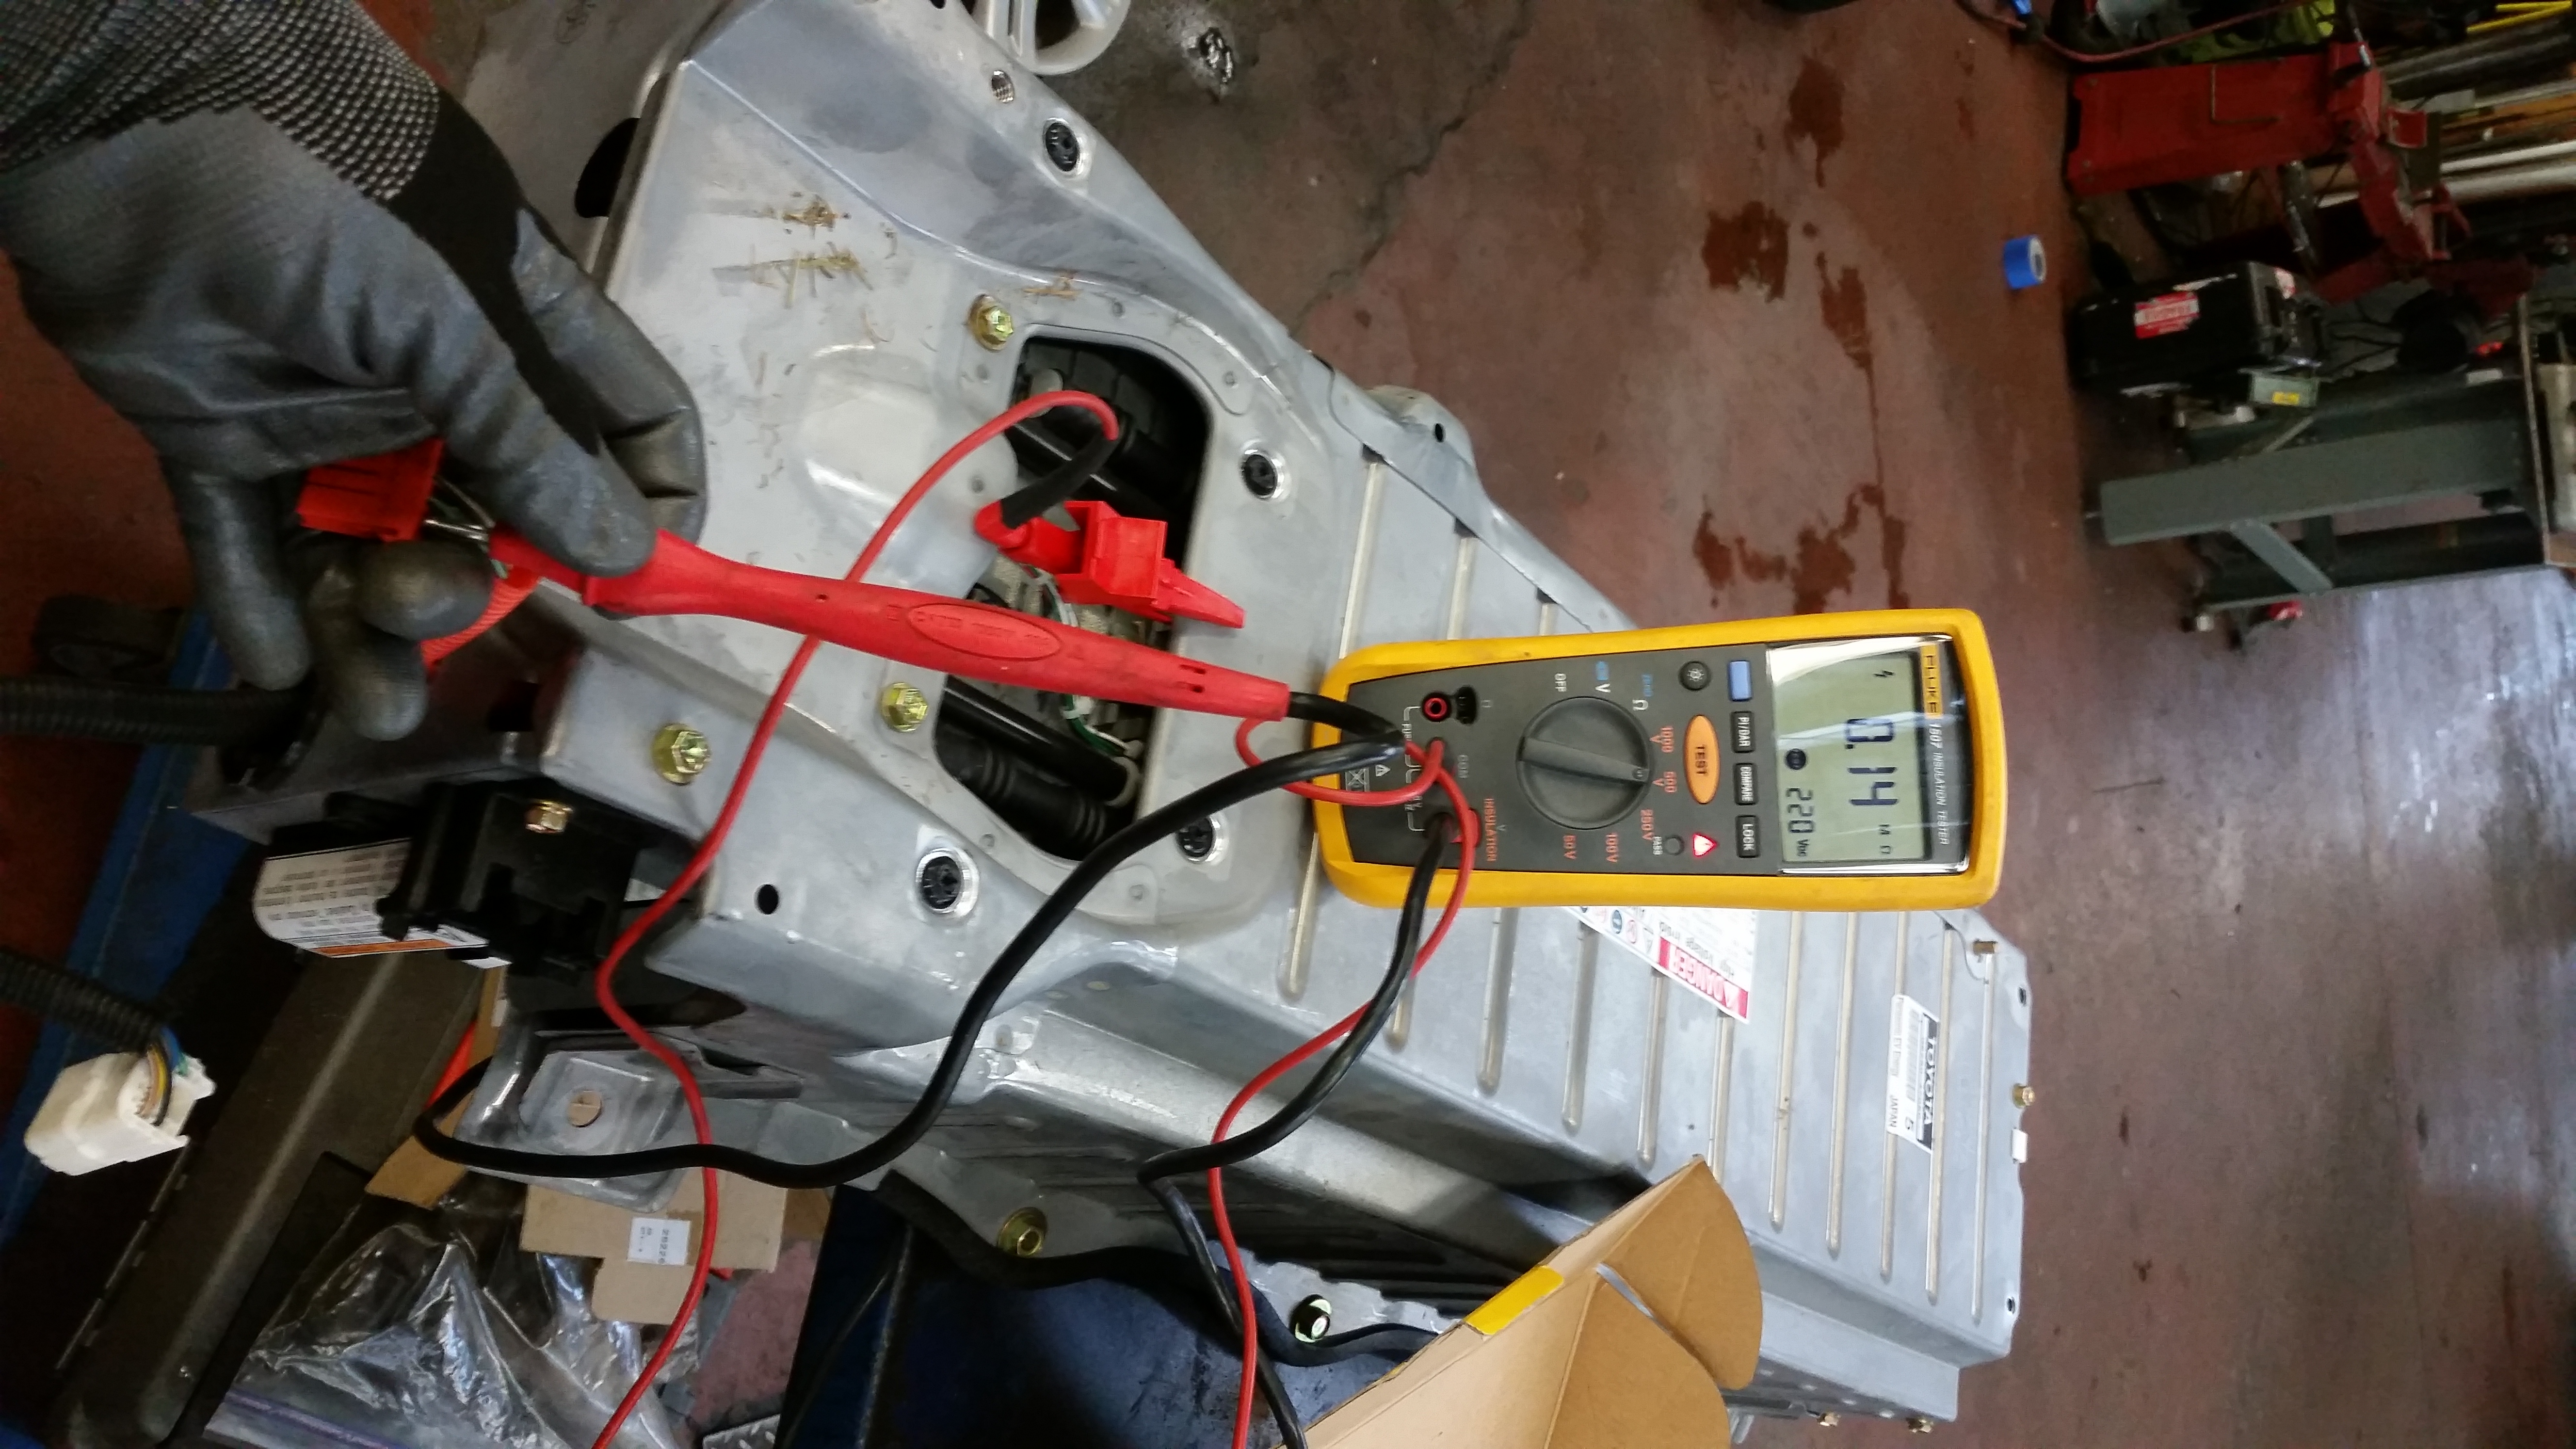 2007 Camry Hybrid Battery >> 2001/2002/2003 Prius P3009 High Voltage Leak Detected